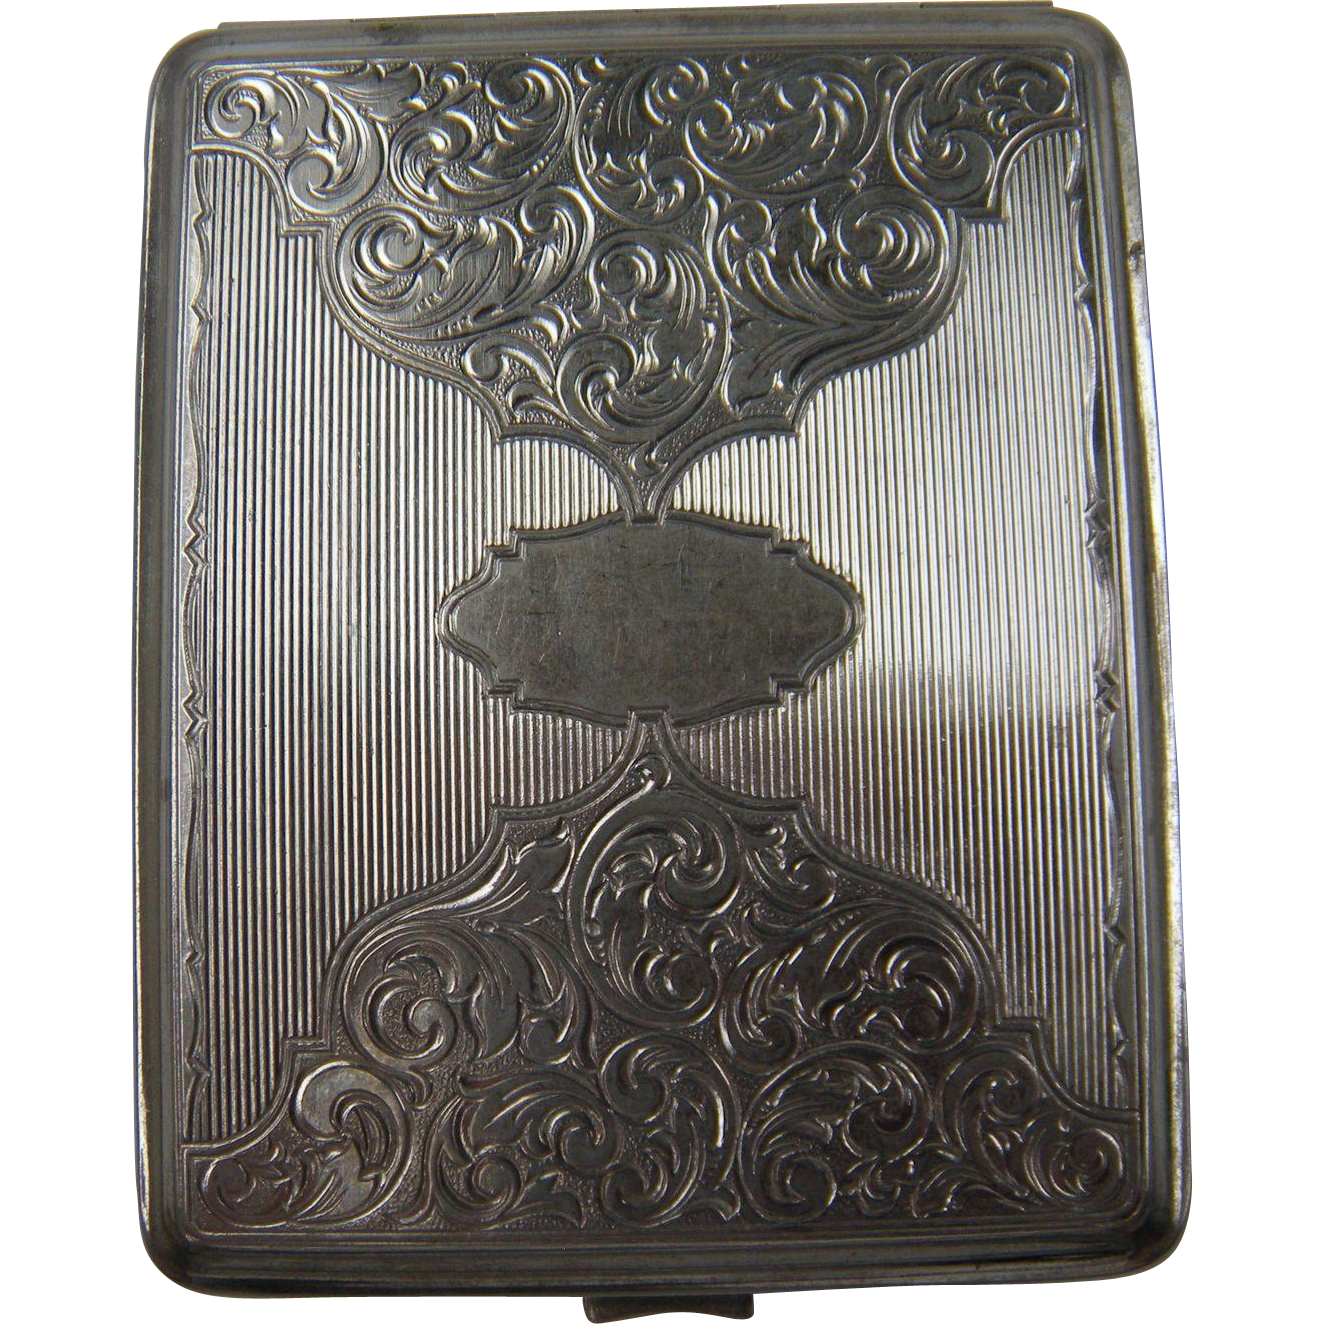 Deeply Embellished Early Cigarette Case